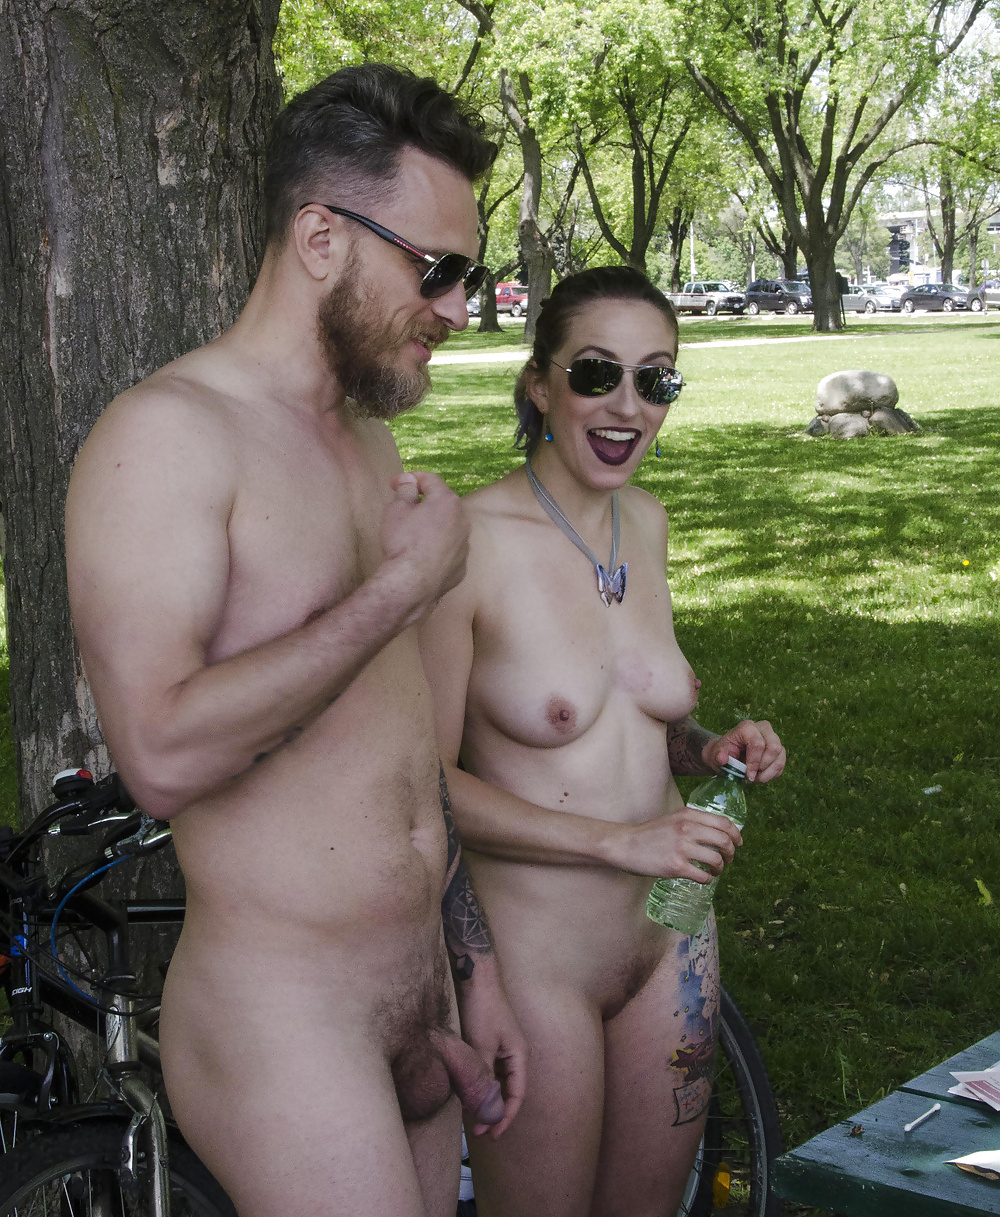 Naked couples outdoors